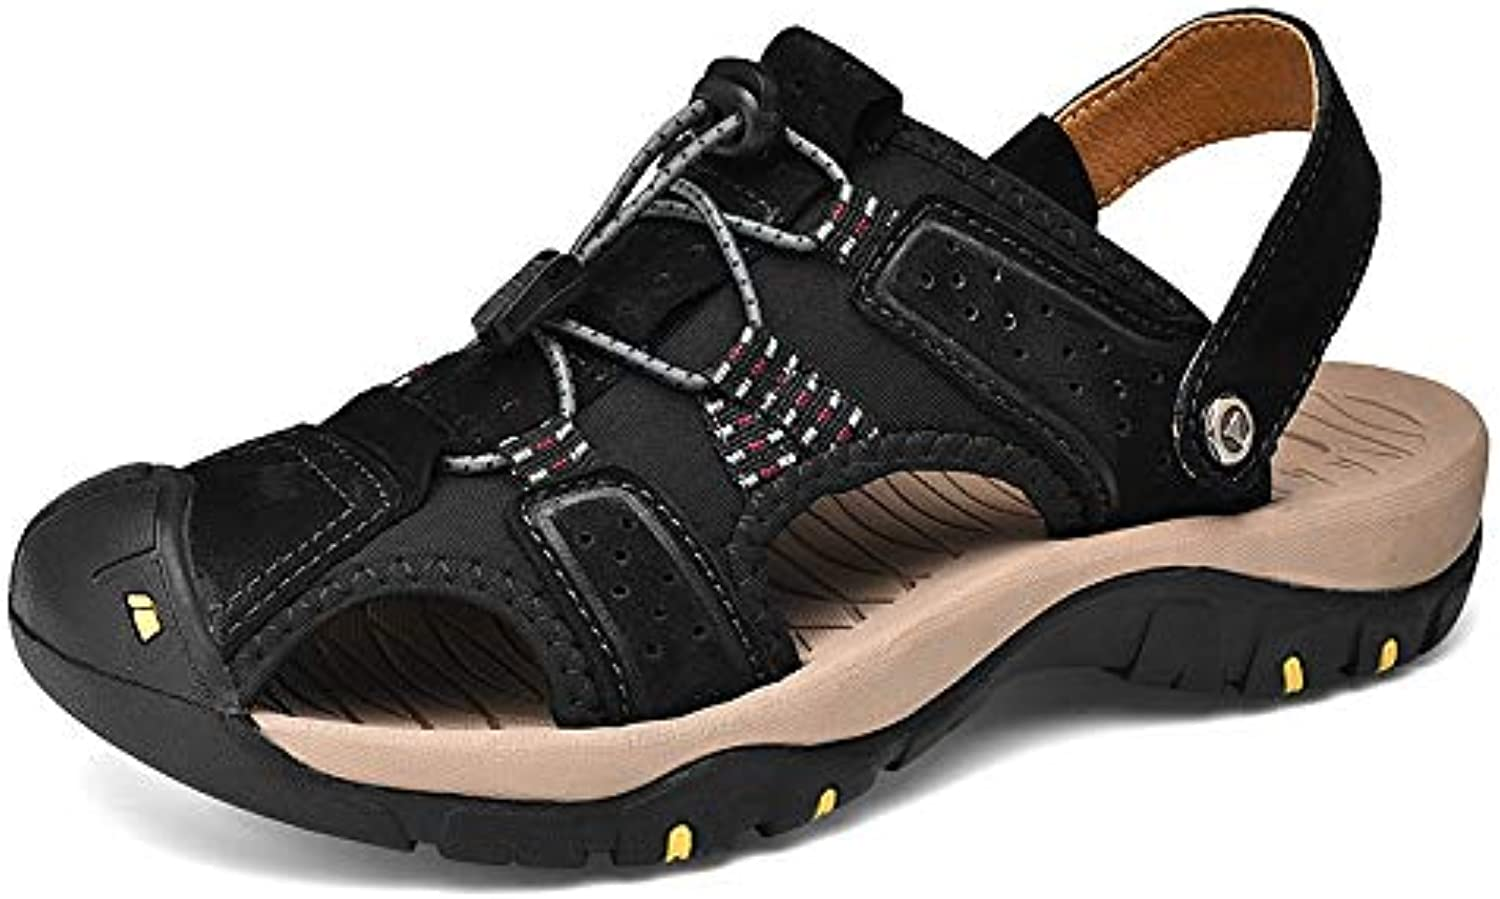 Men's Leather Sandals; Sports Outdoor Sandals Slippers; Men's Beach Slippers Fisherman's Breathable Summer Casual shoes, Non-Slip Beach shoes